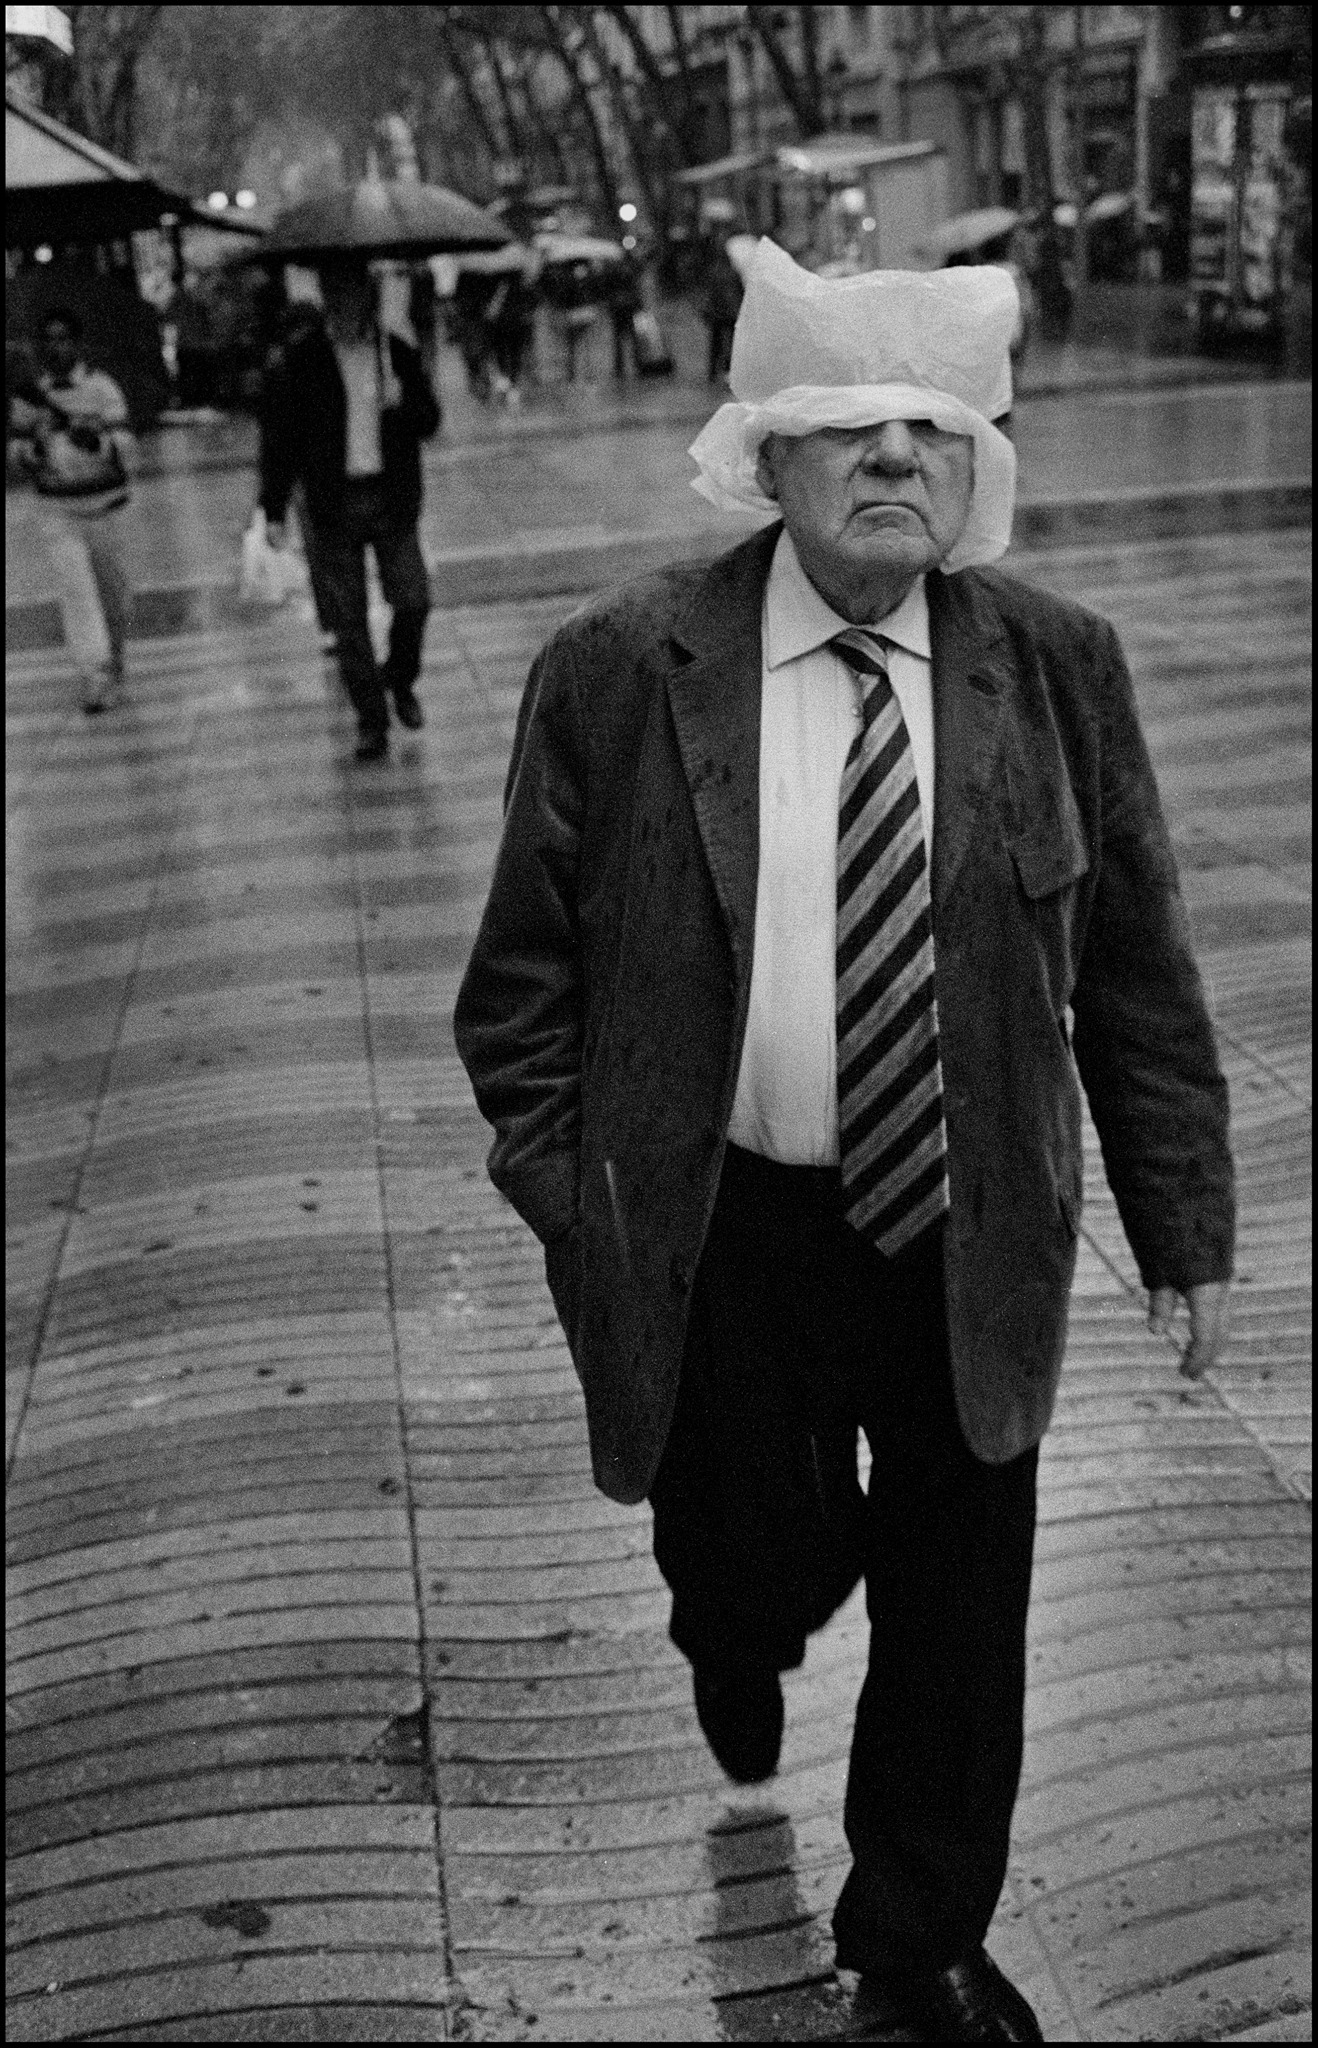 """Bad Weather"" Street Photography Assignment Winner: Julian Furones from Spain"